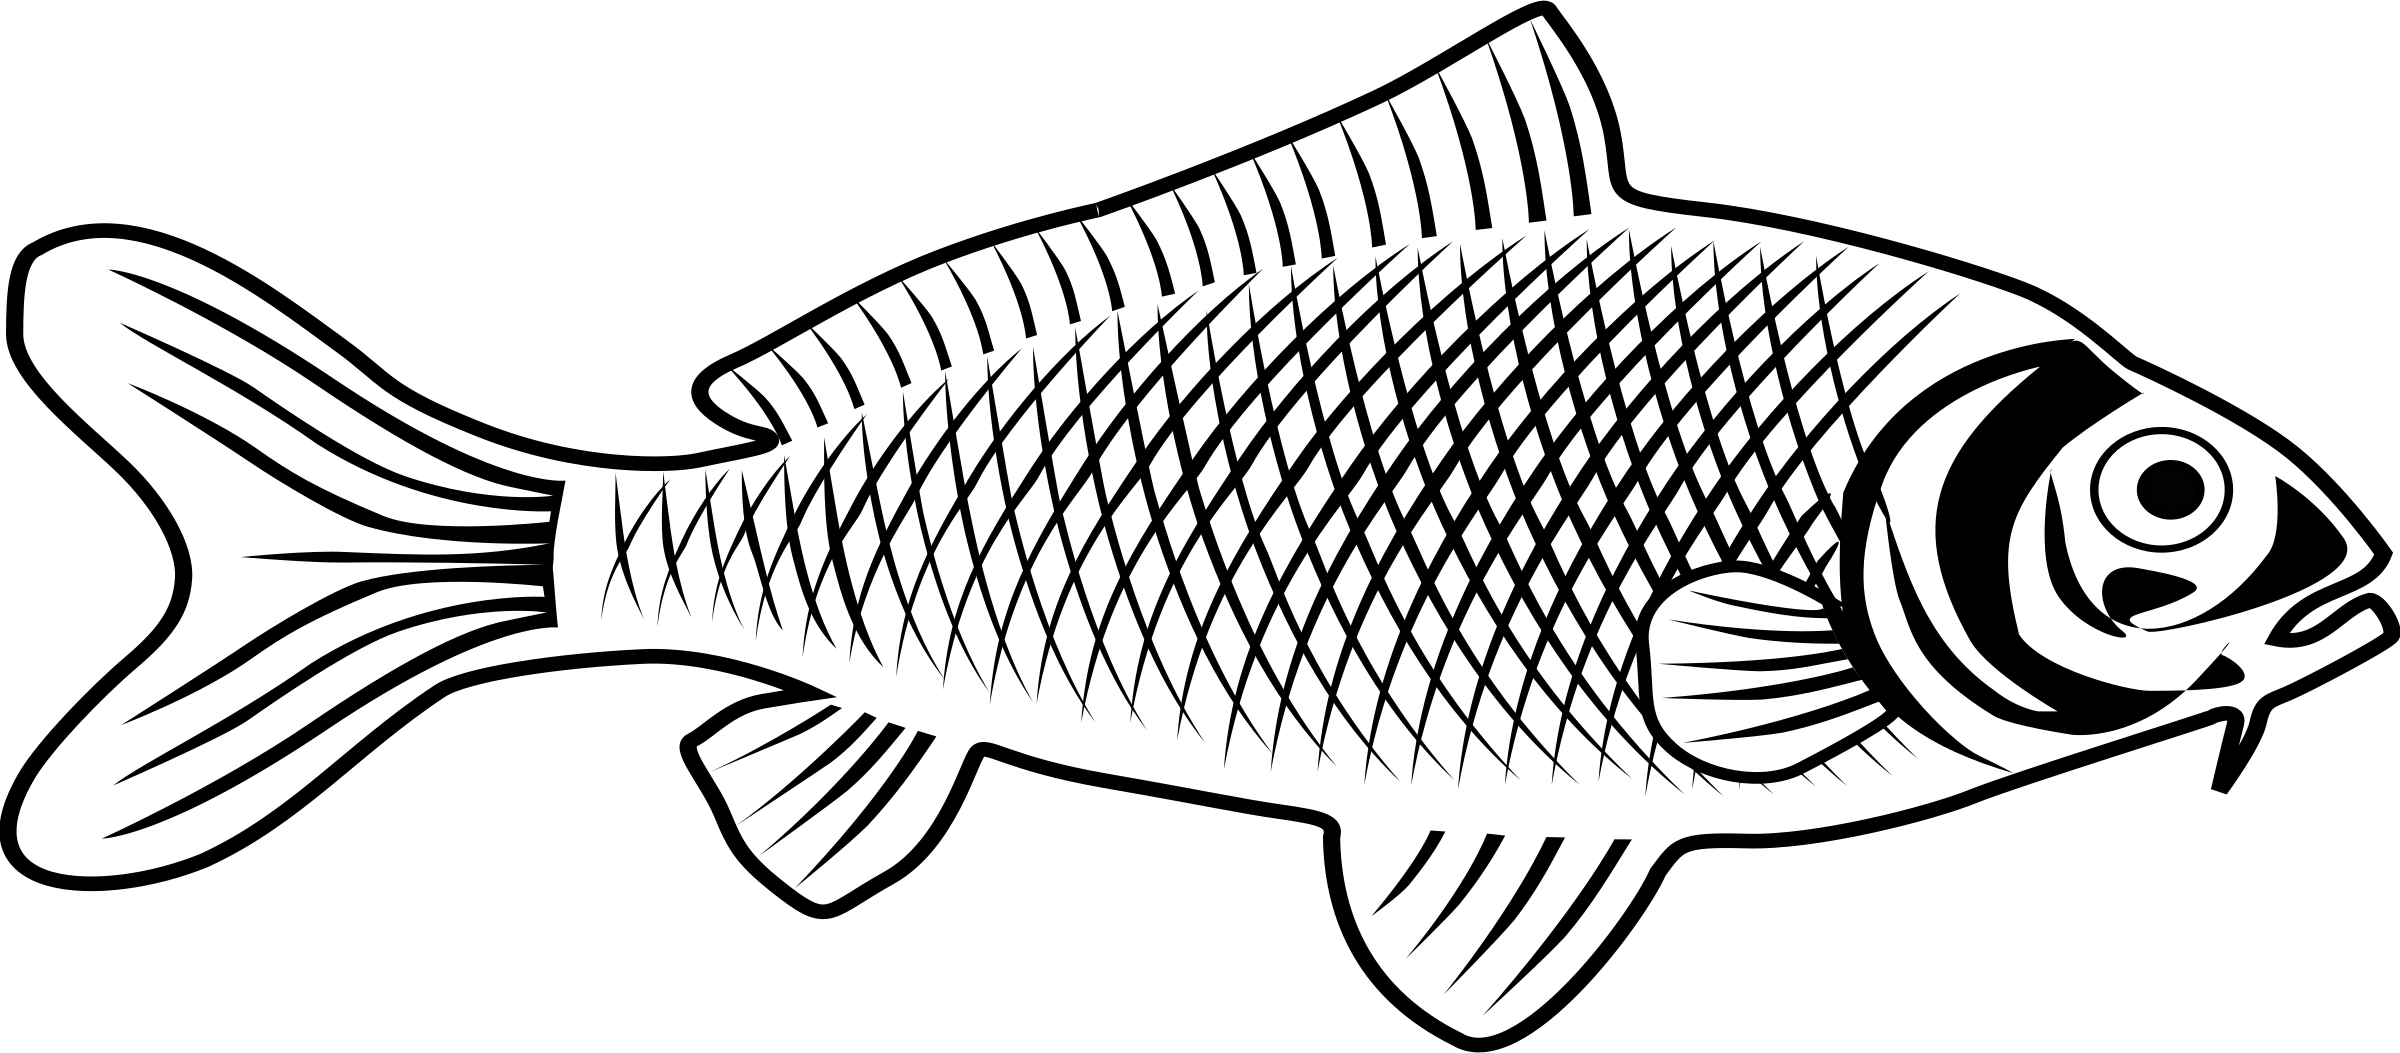 Sunfish drawing fishline. Collection of fish